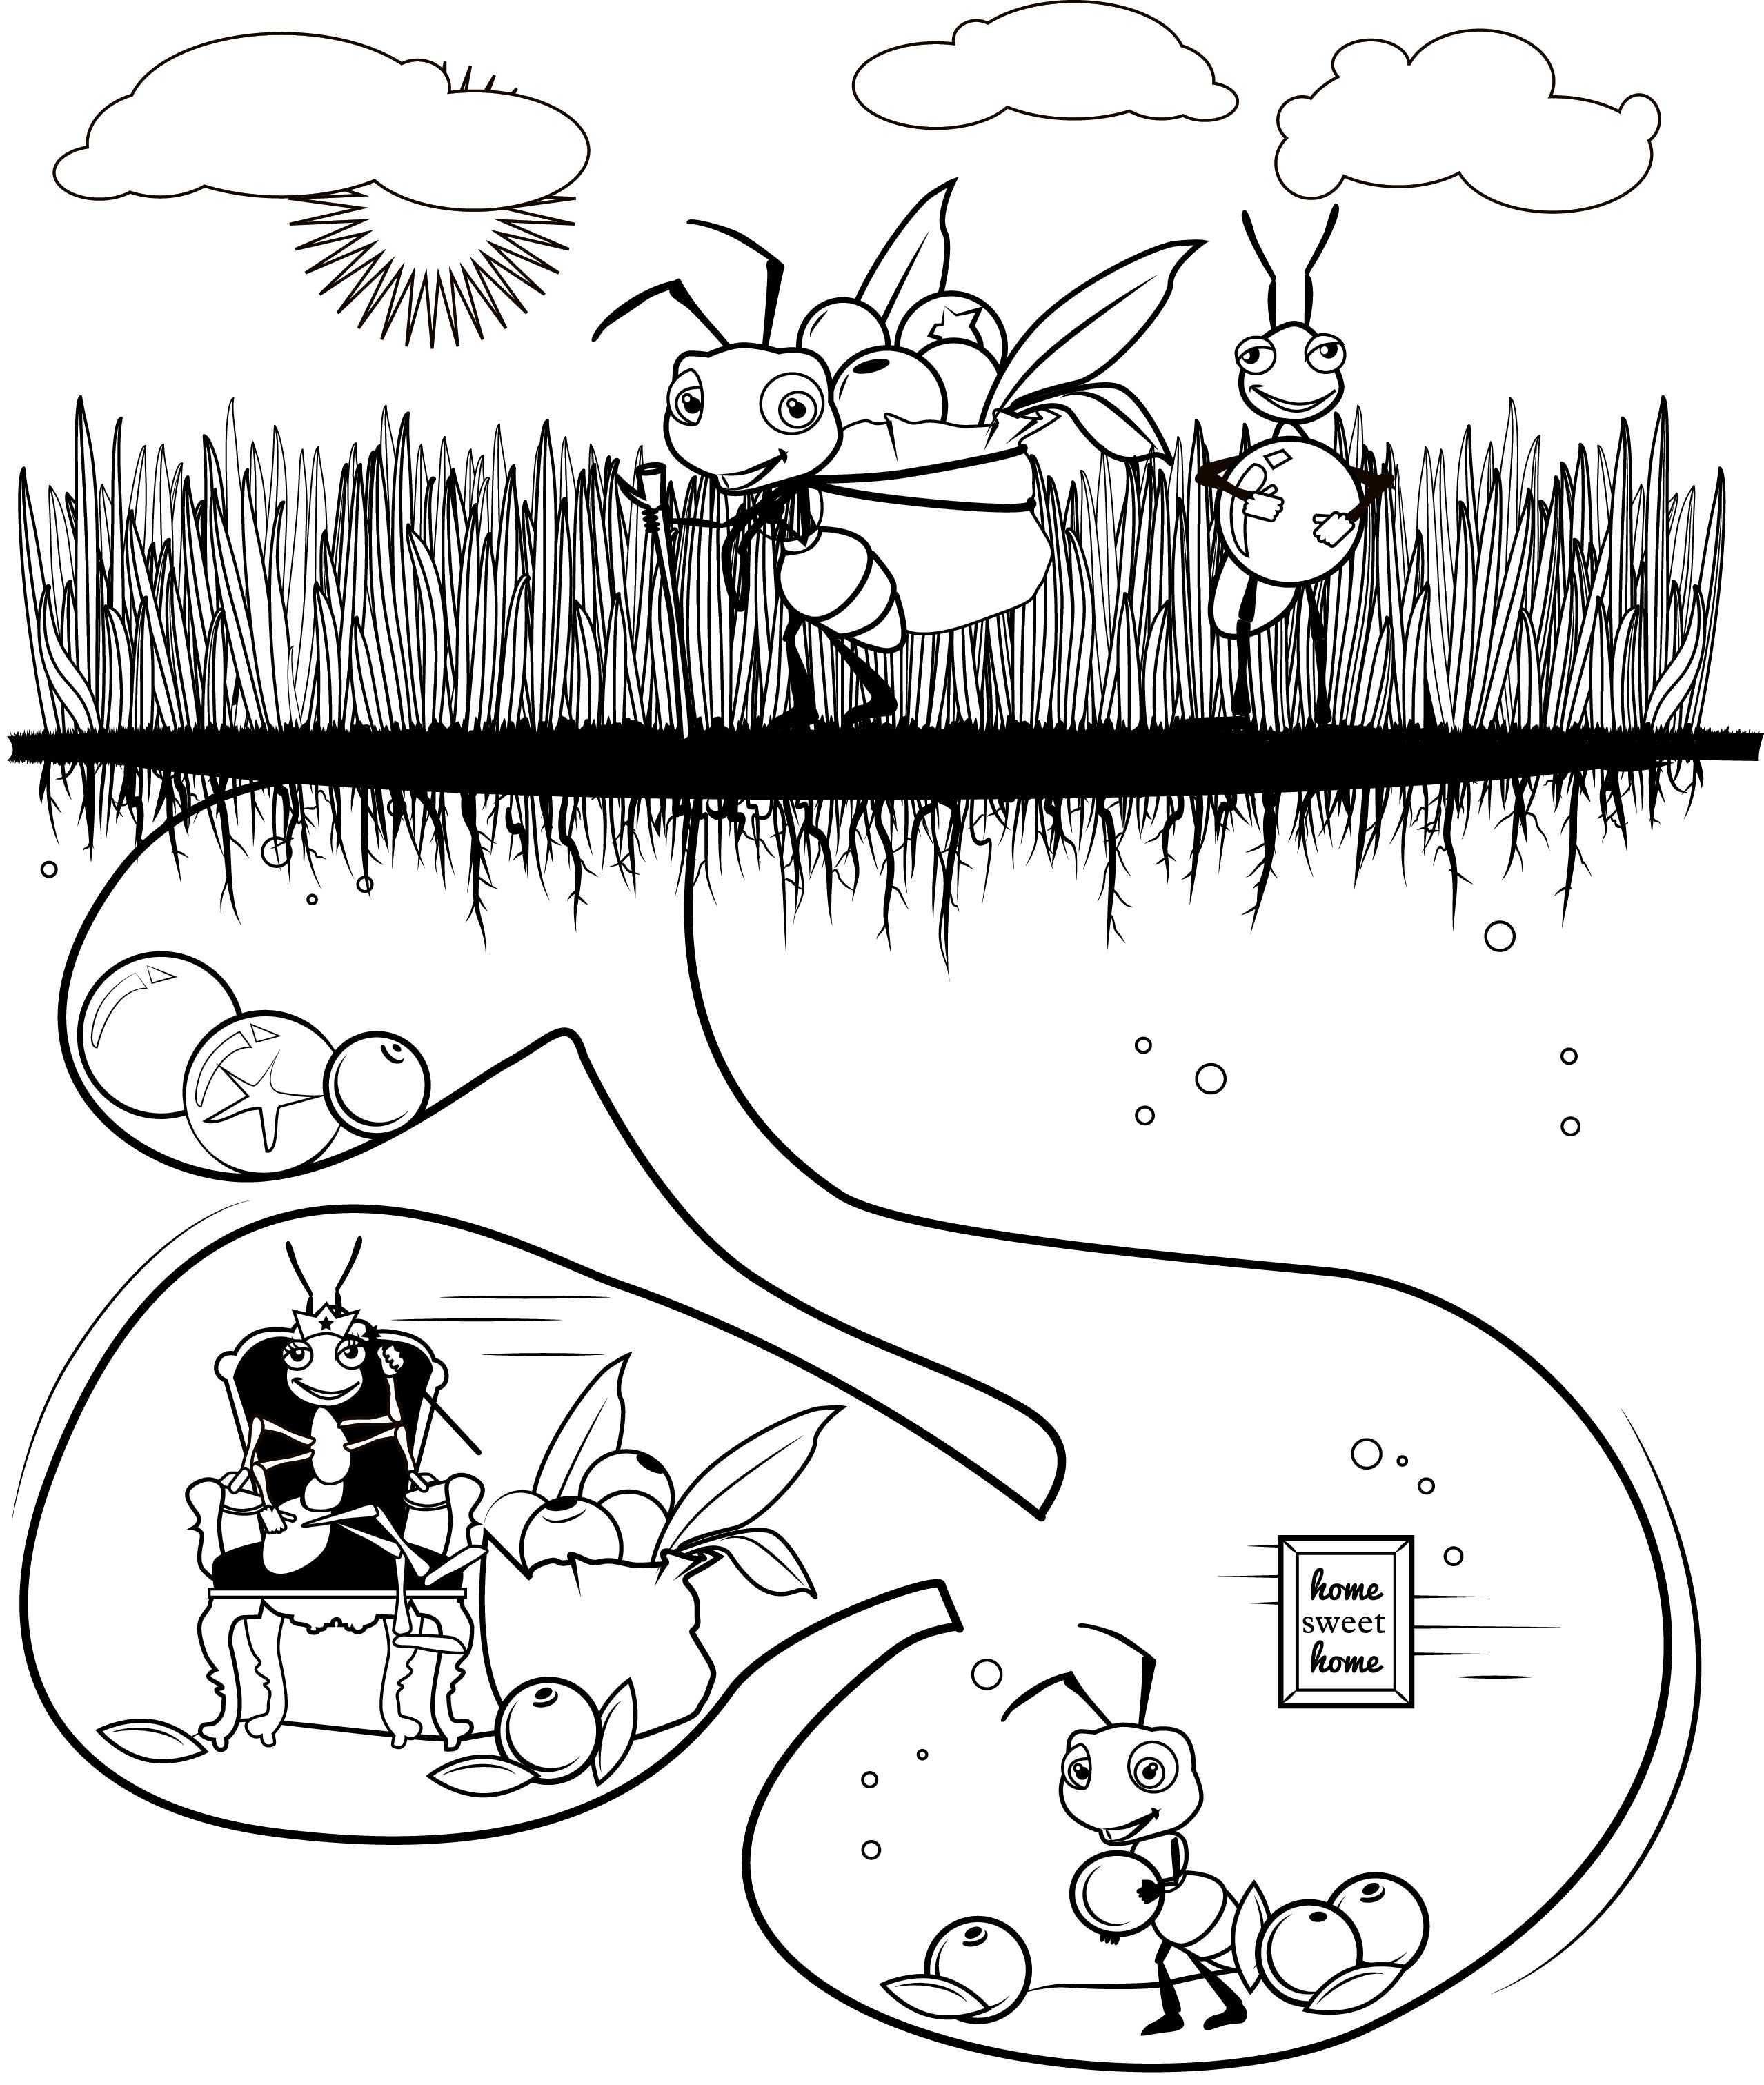 ant coloring sheet - focus group ant day   Garden Creative Arts ...